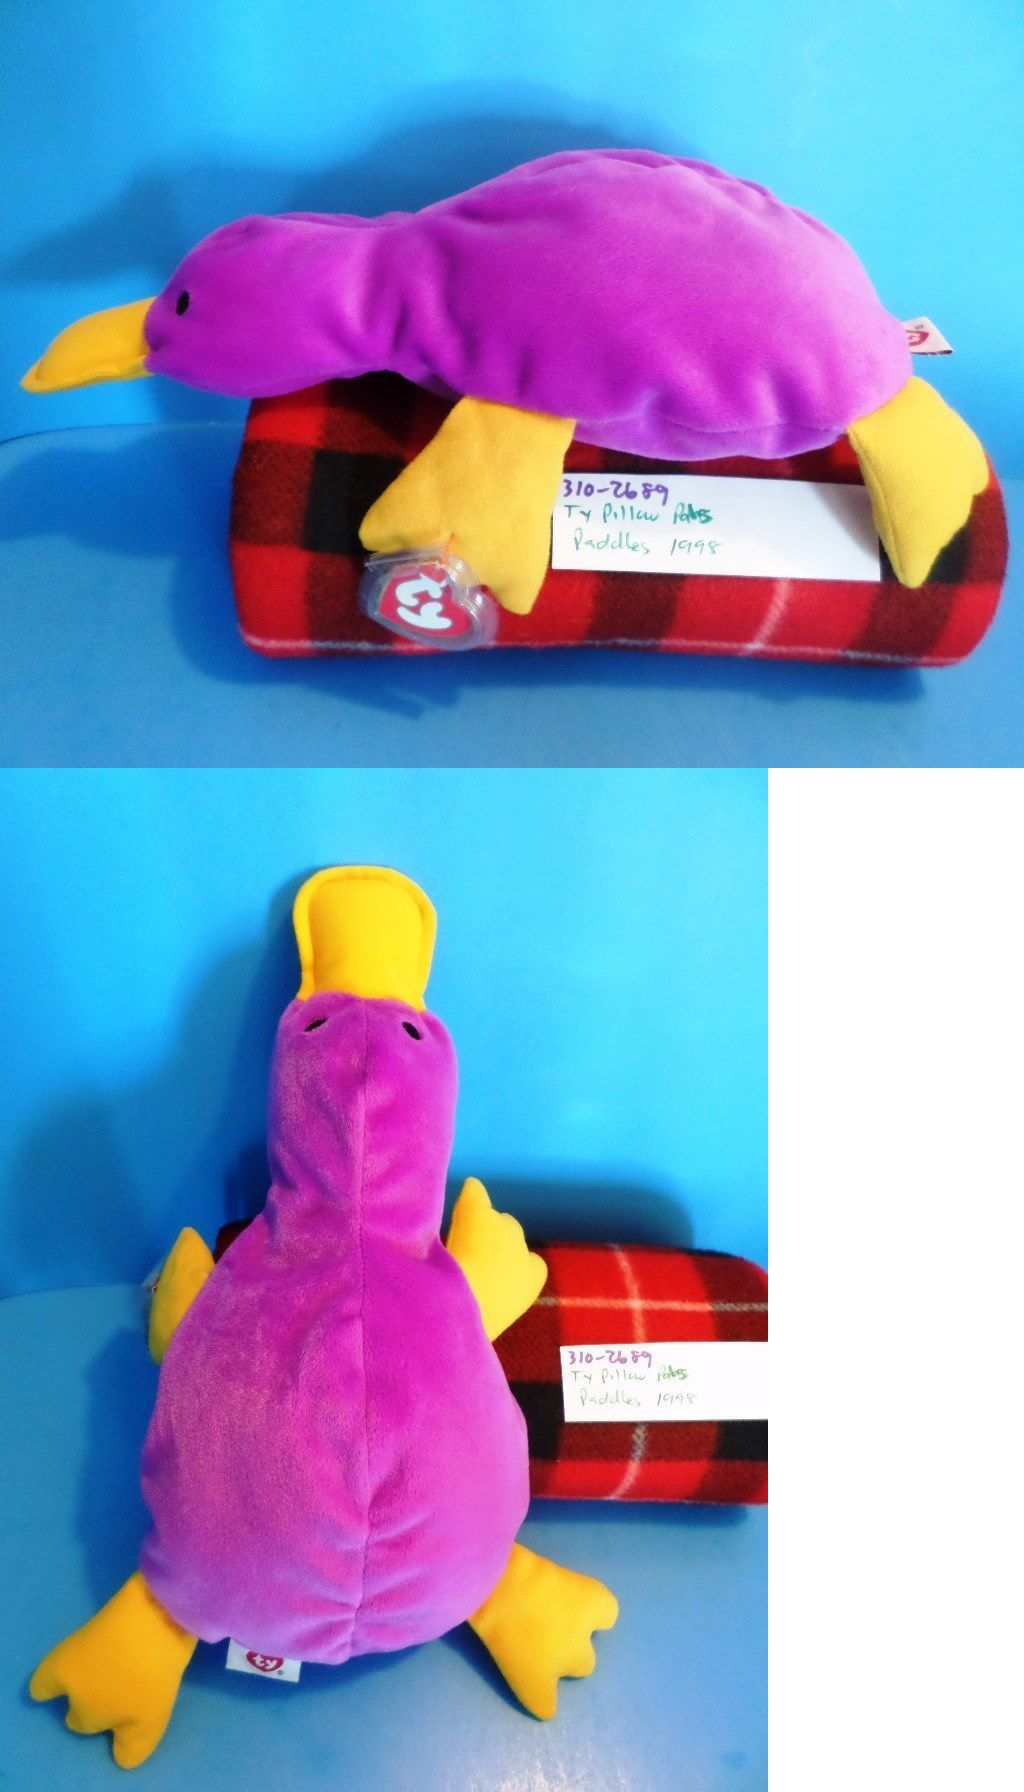 1cd478bd5b4 Pillow Pals 1633  Ty Pillow Pals Paddles The Purple Platypus 1998  Plush(310-2689) -  BUY IT NOW ONLY   18 on  eBay  pillow  paddles  purple   platypus